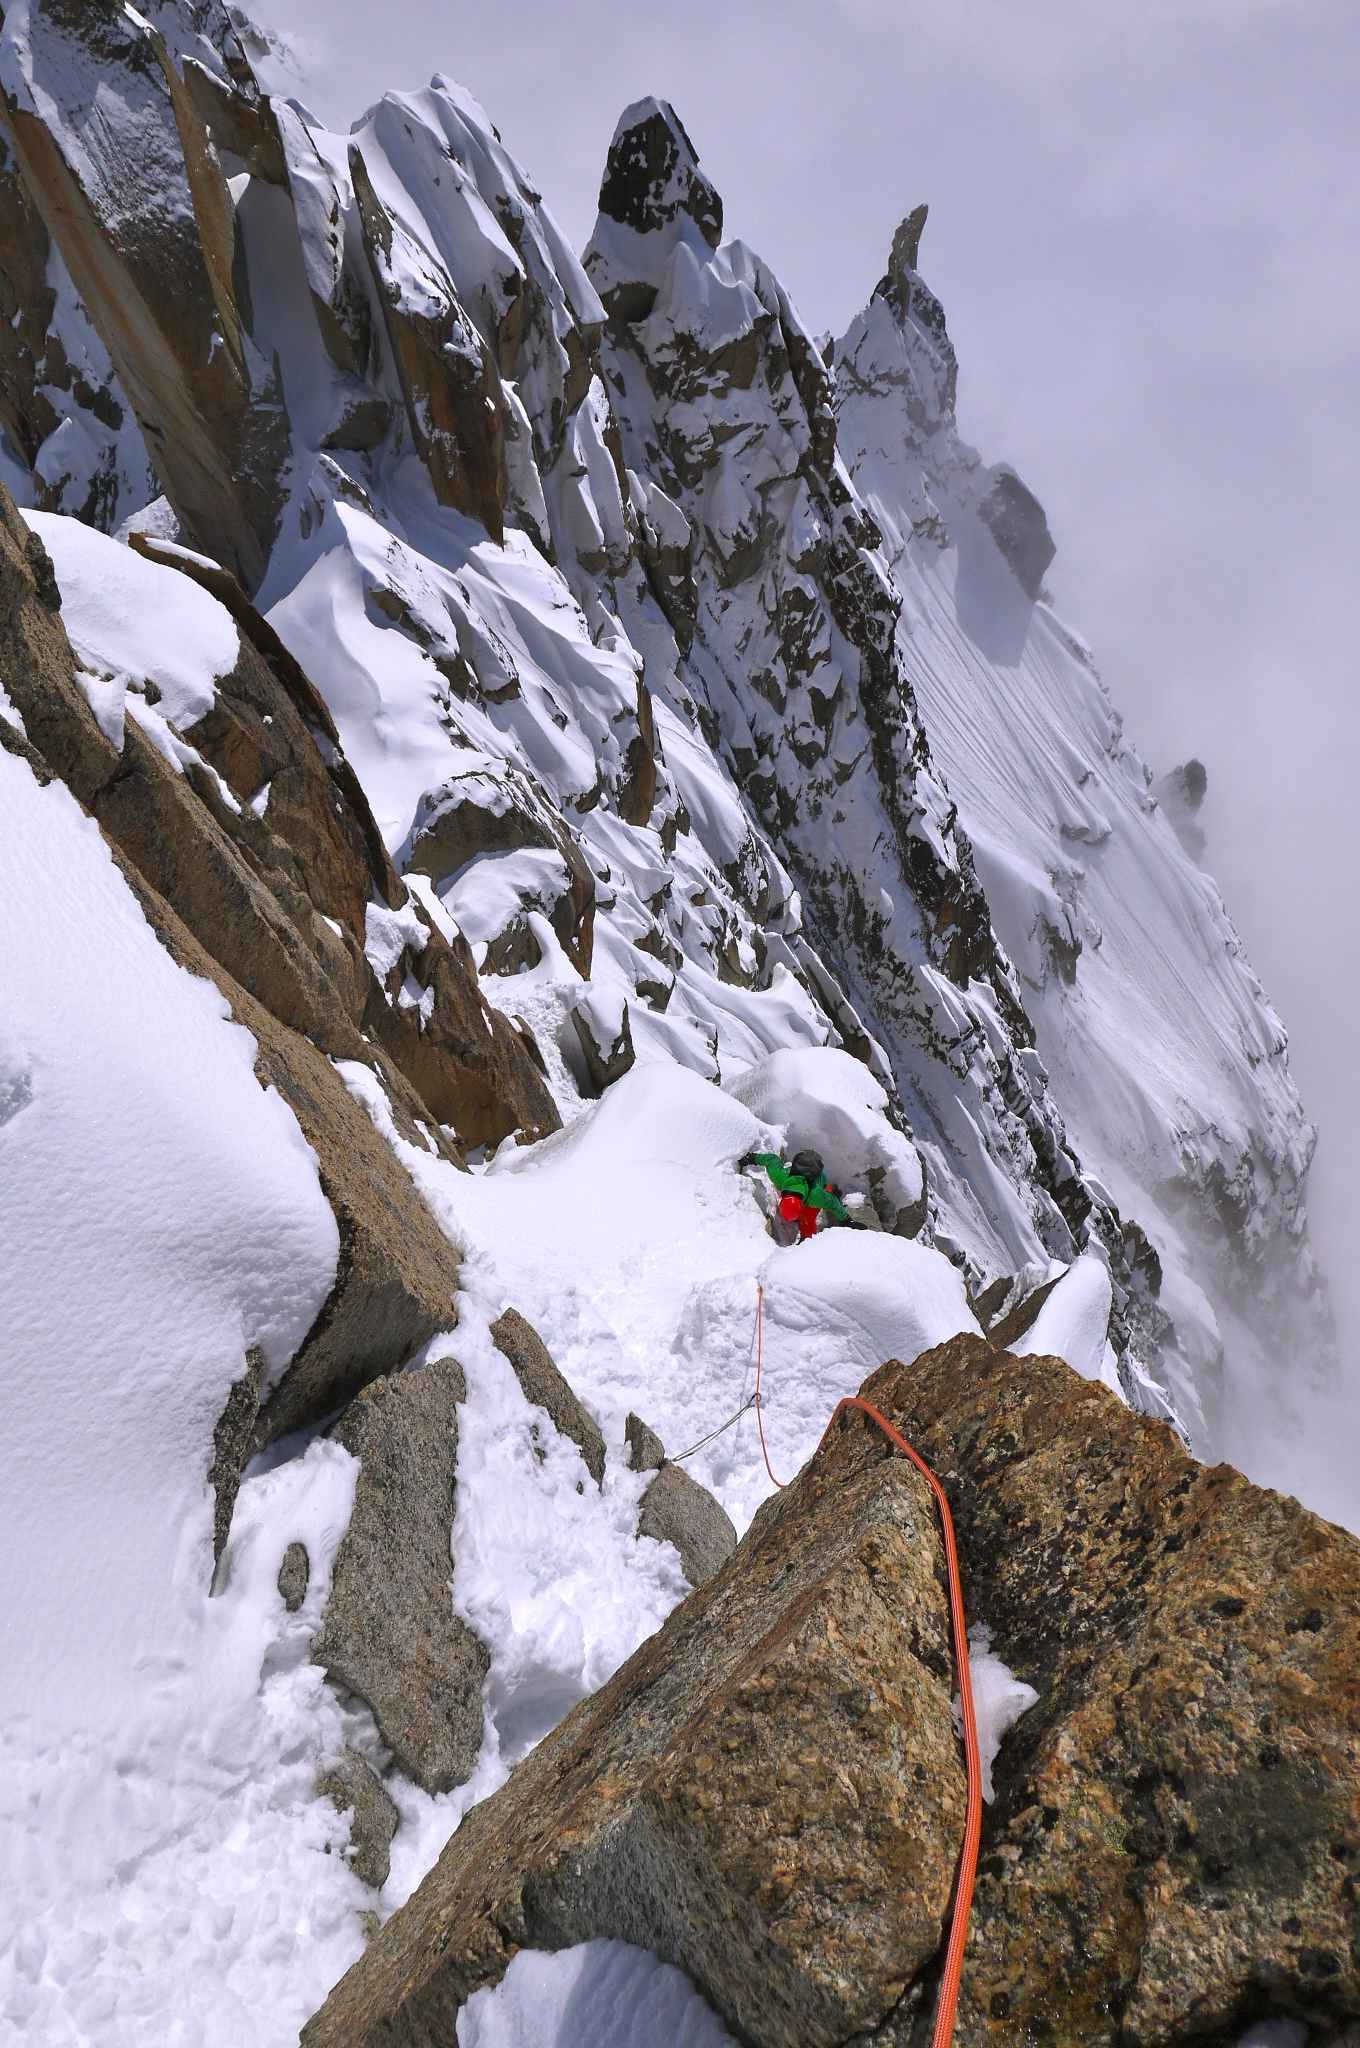 Climbing the last pitch of the Cosmiques Arete